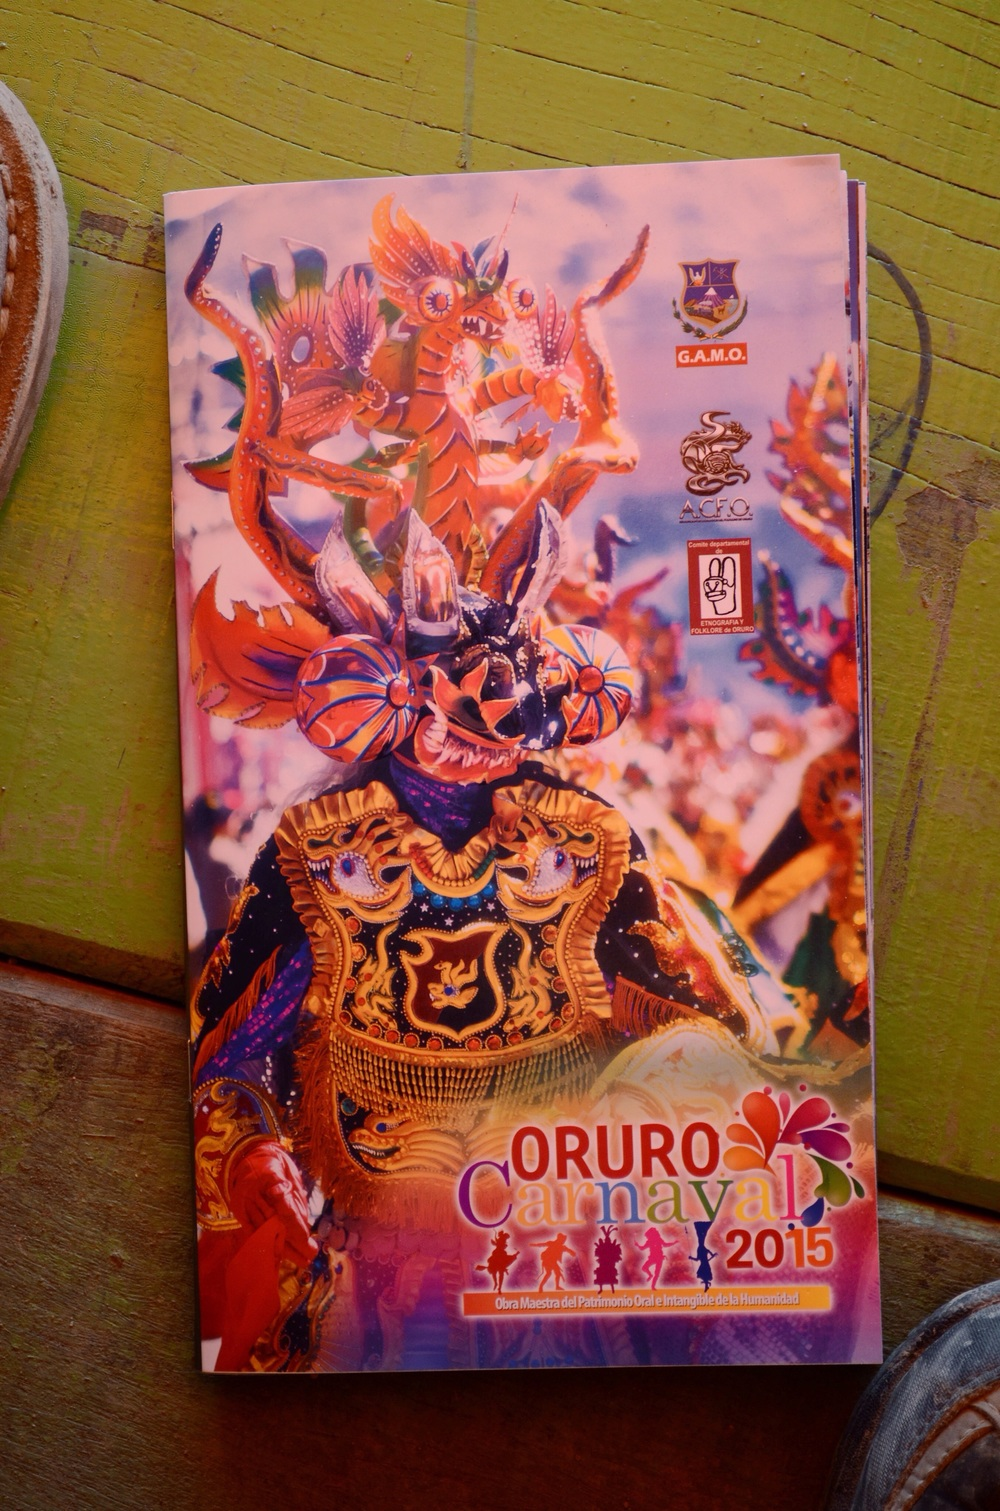 Official guide to Carnaval 2015 showing the Devil character // 15 february 2015